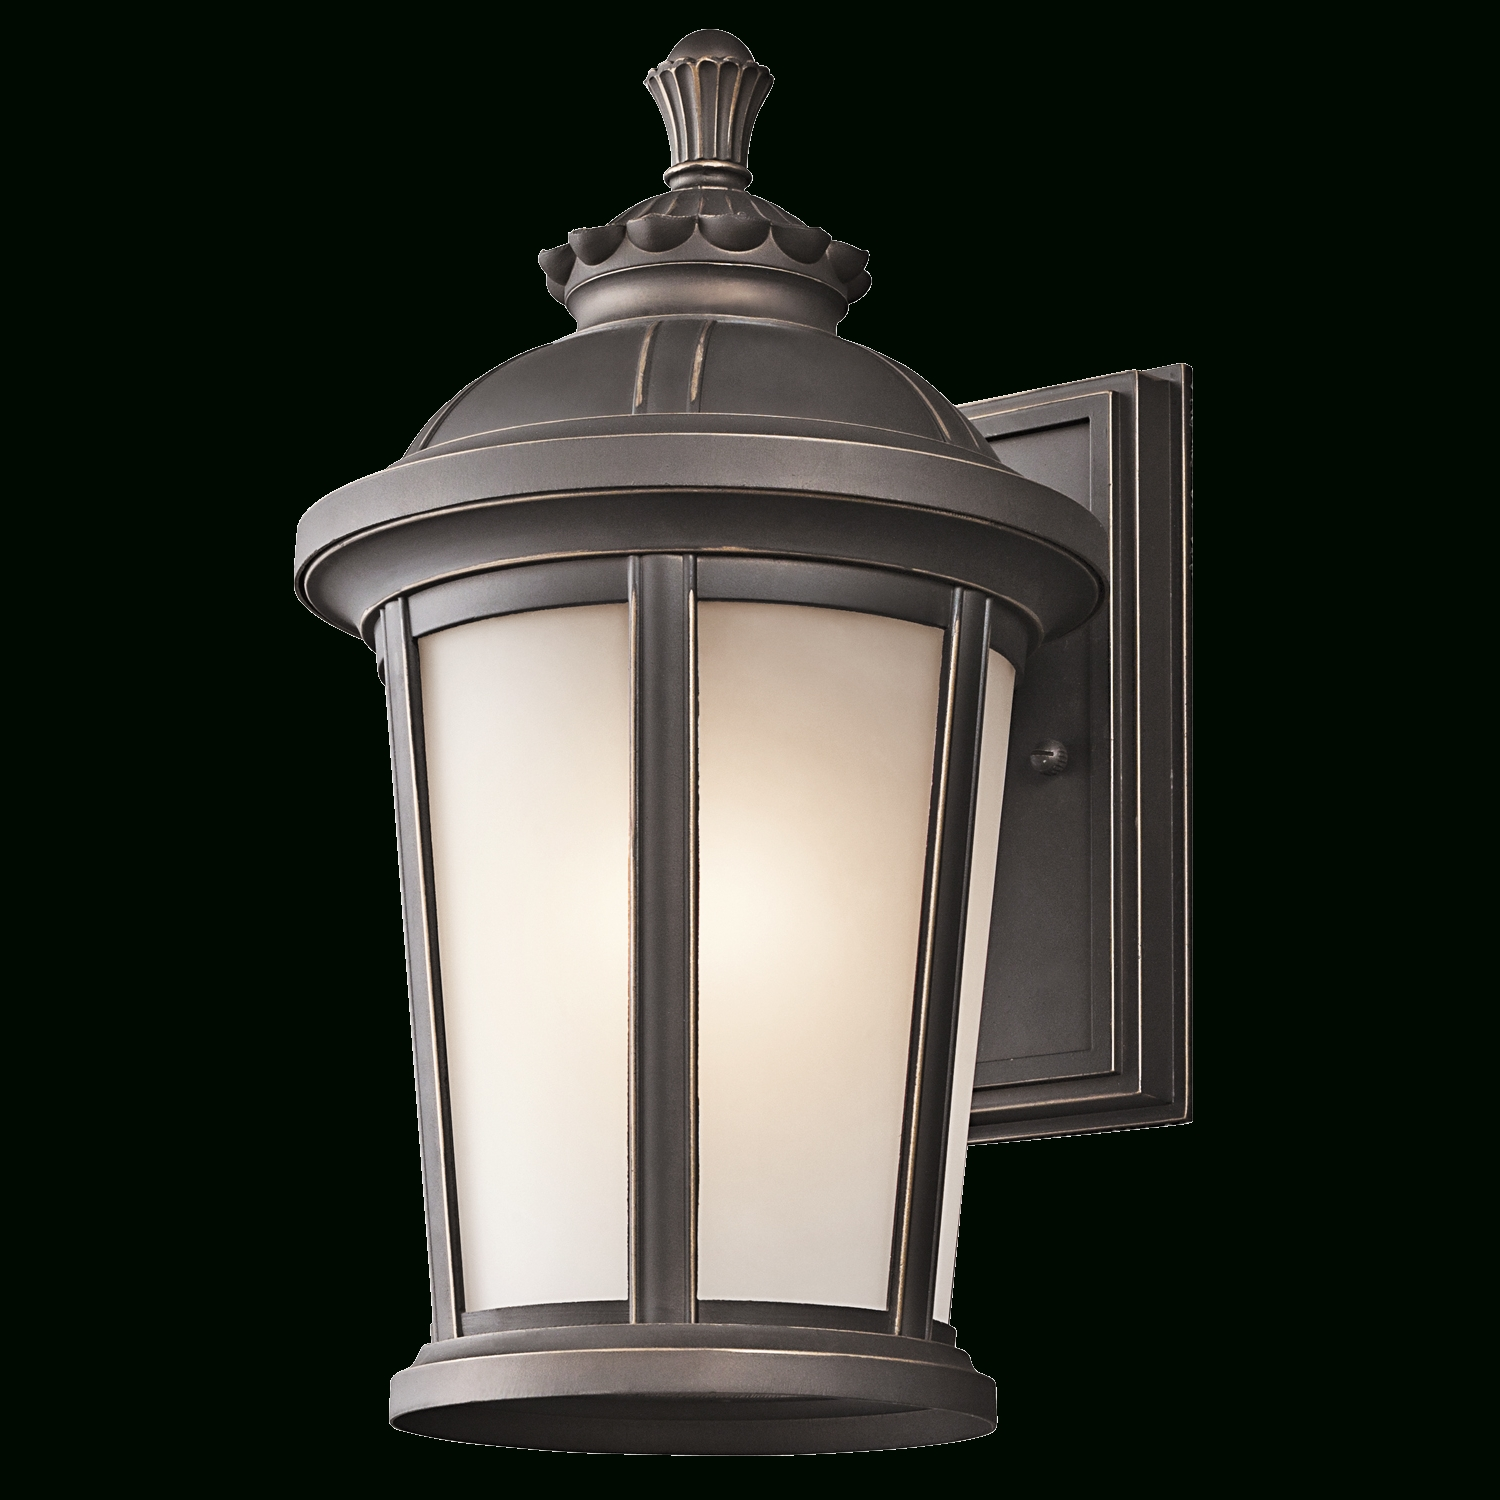 2018 Outdoor Wall Led Kichler Lighting Throughout Ralston Collection 1 Light Outdoor Wall Lamp In Rubbed Bronze (View 2 of 20)